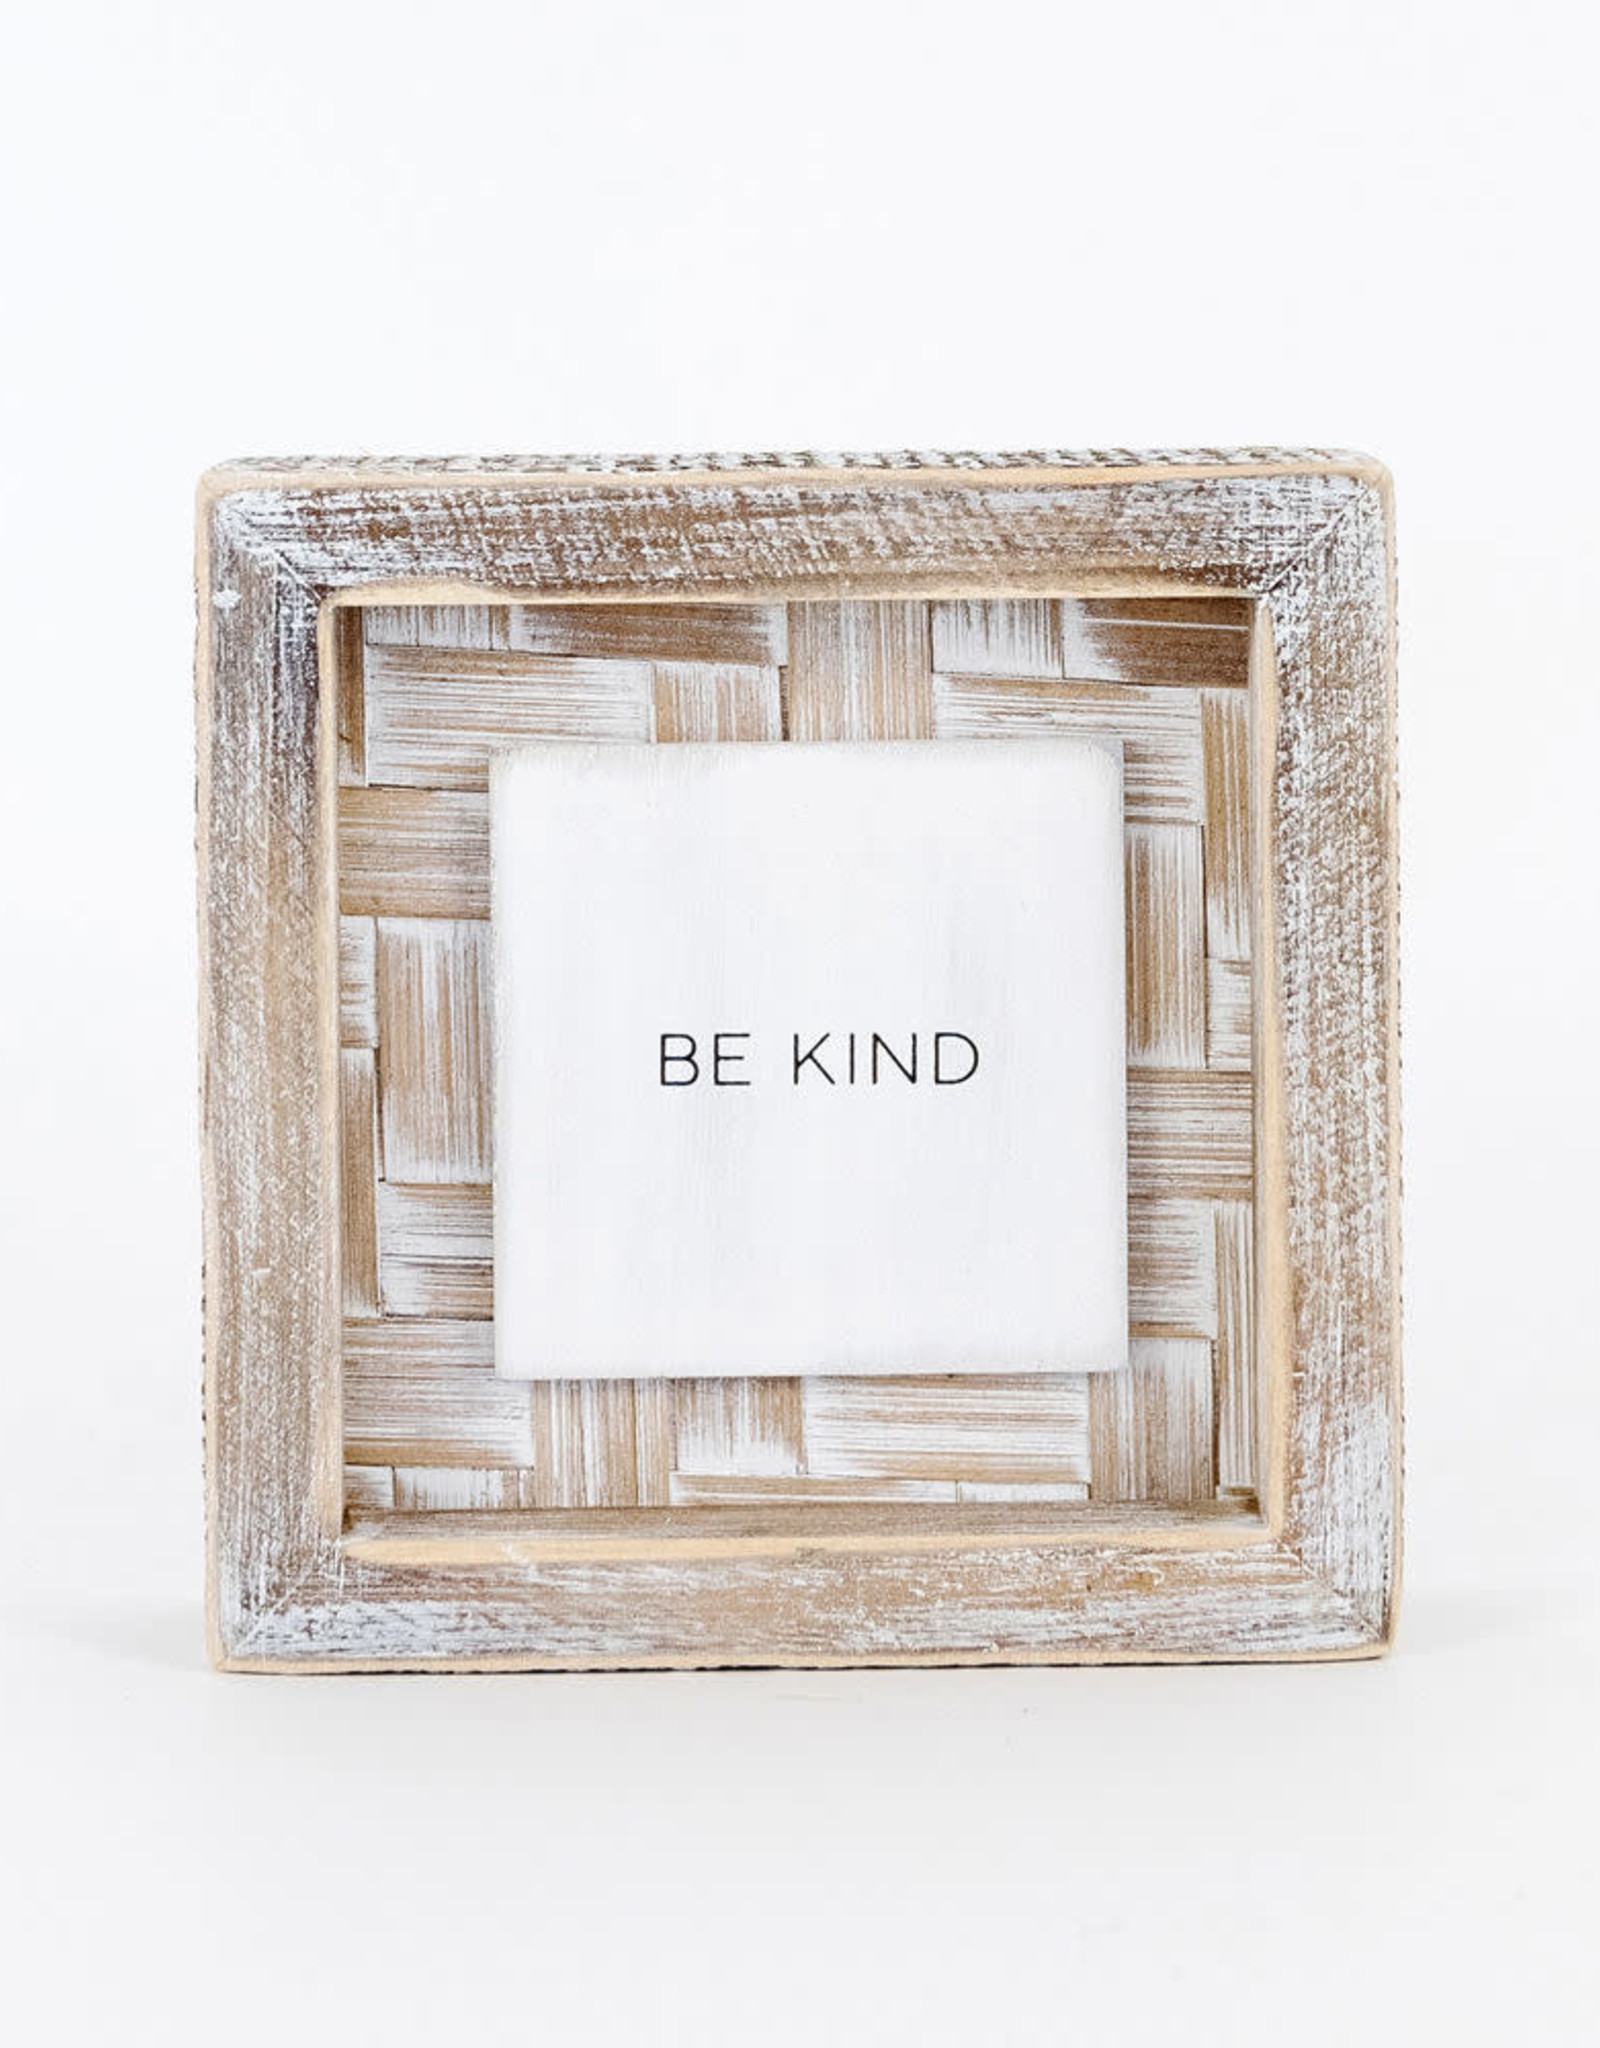 - Be Kind Bamboo Wood Framed Sign 5x5x1.5